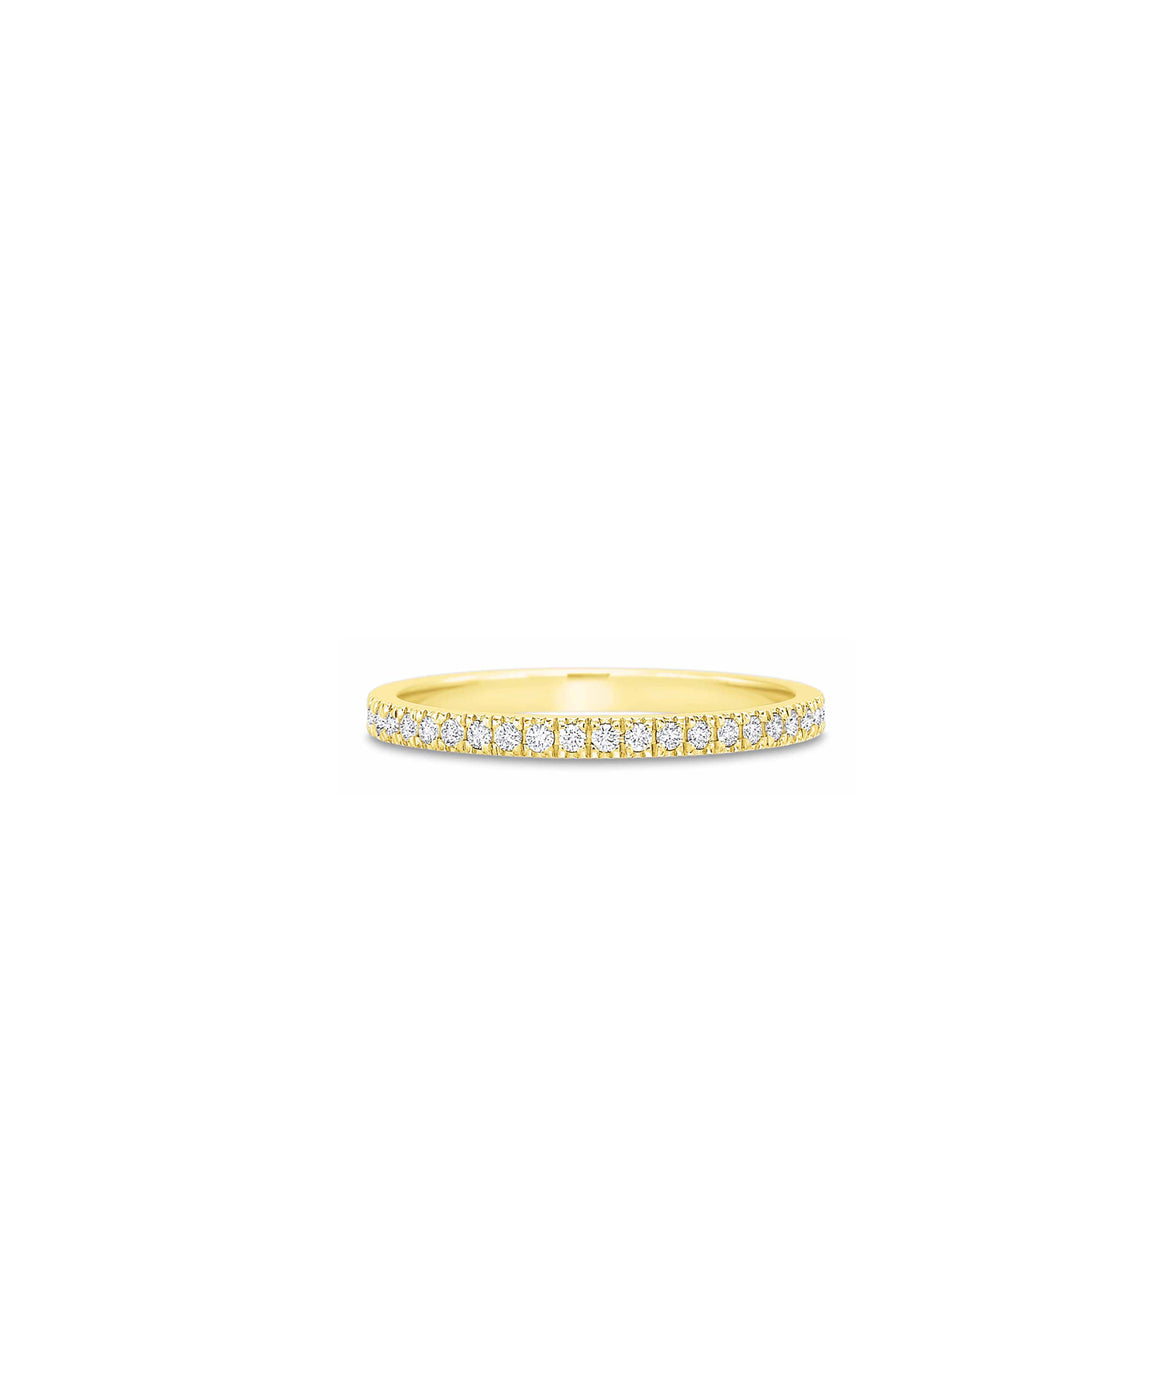 Small Yellow Gold Diamond Eternity Band - Lesley Ann Jewels